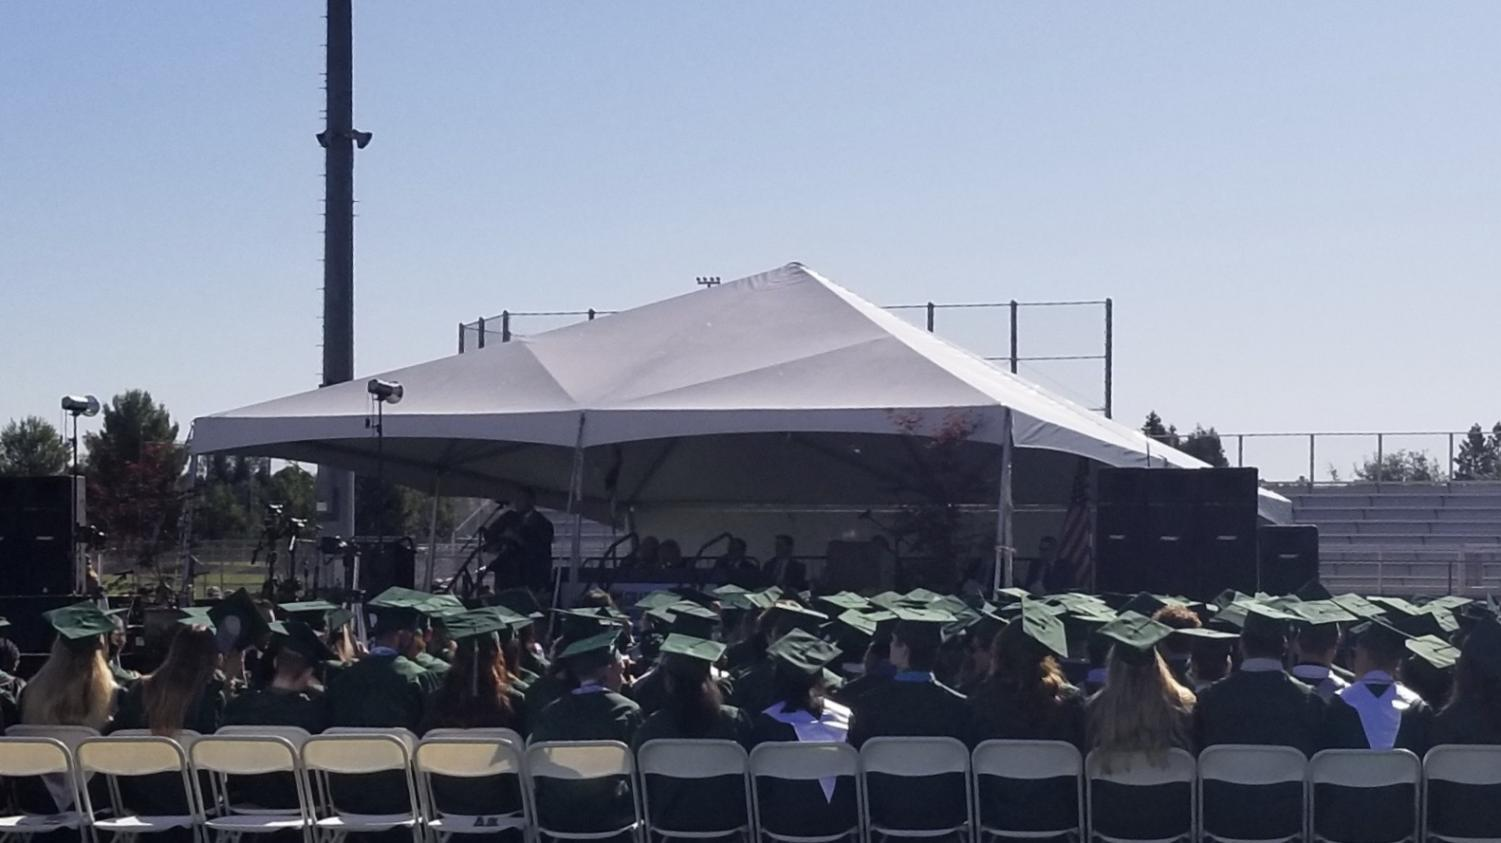 The GBHS class of 2019 graduation ceremony was held on the football field, as it has as tradition/